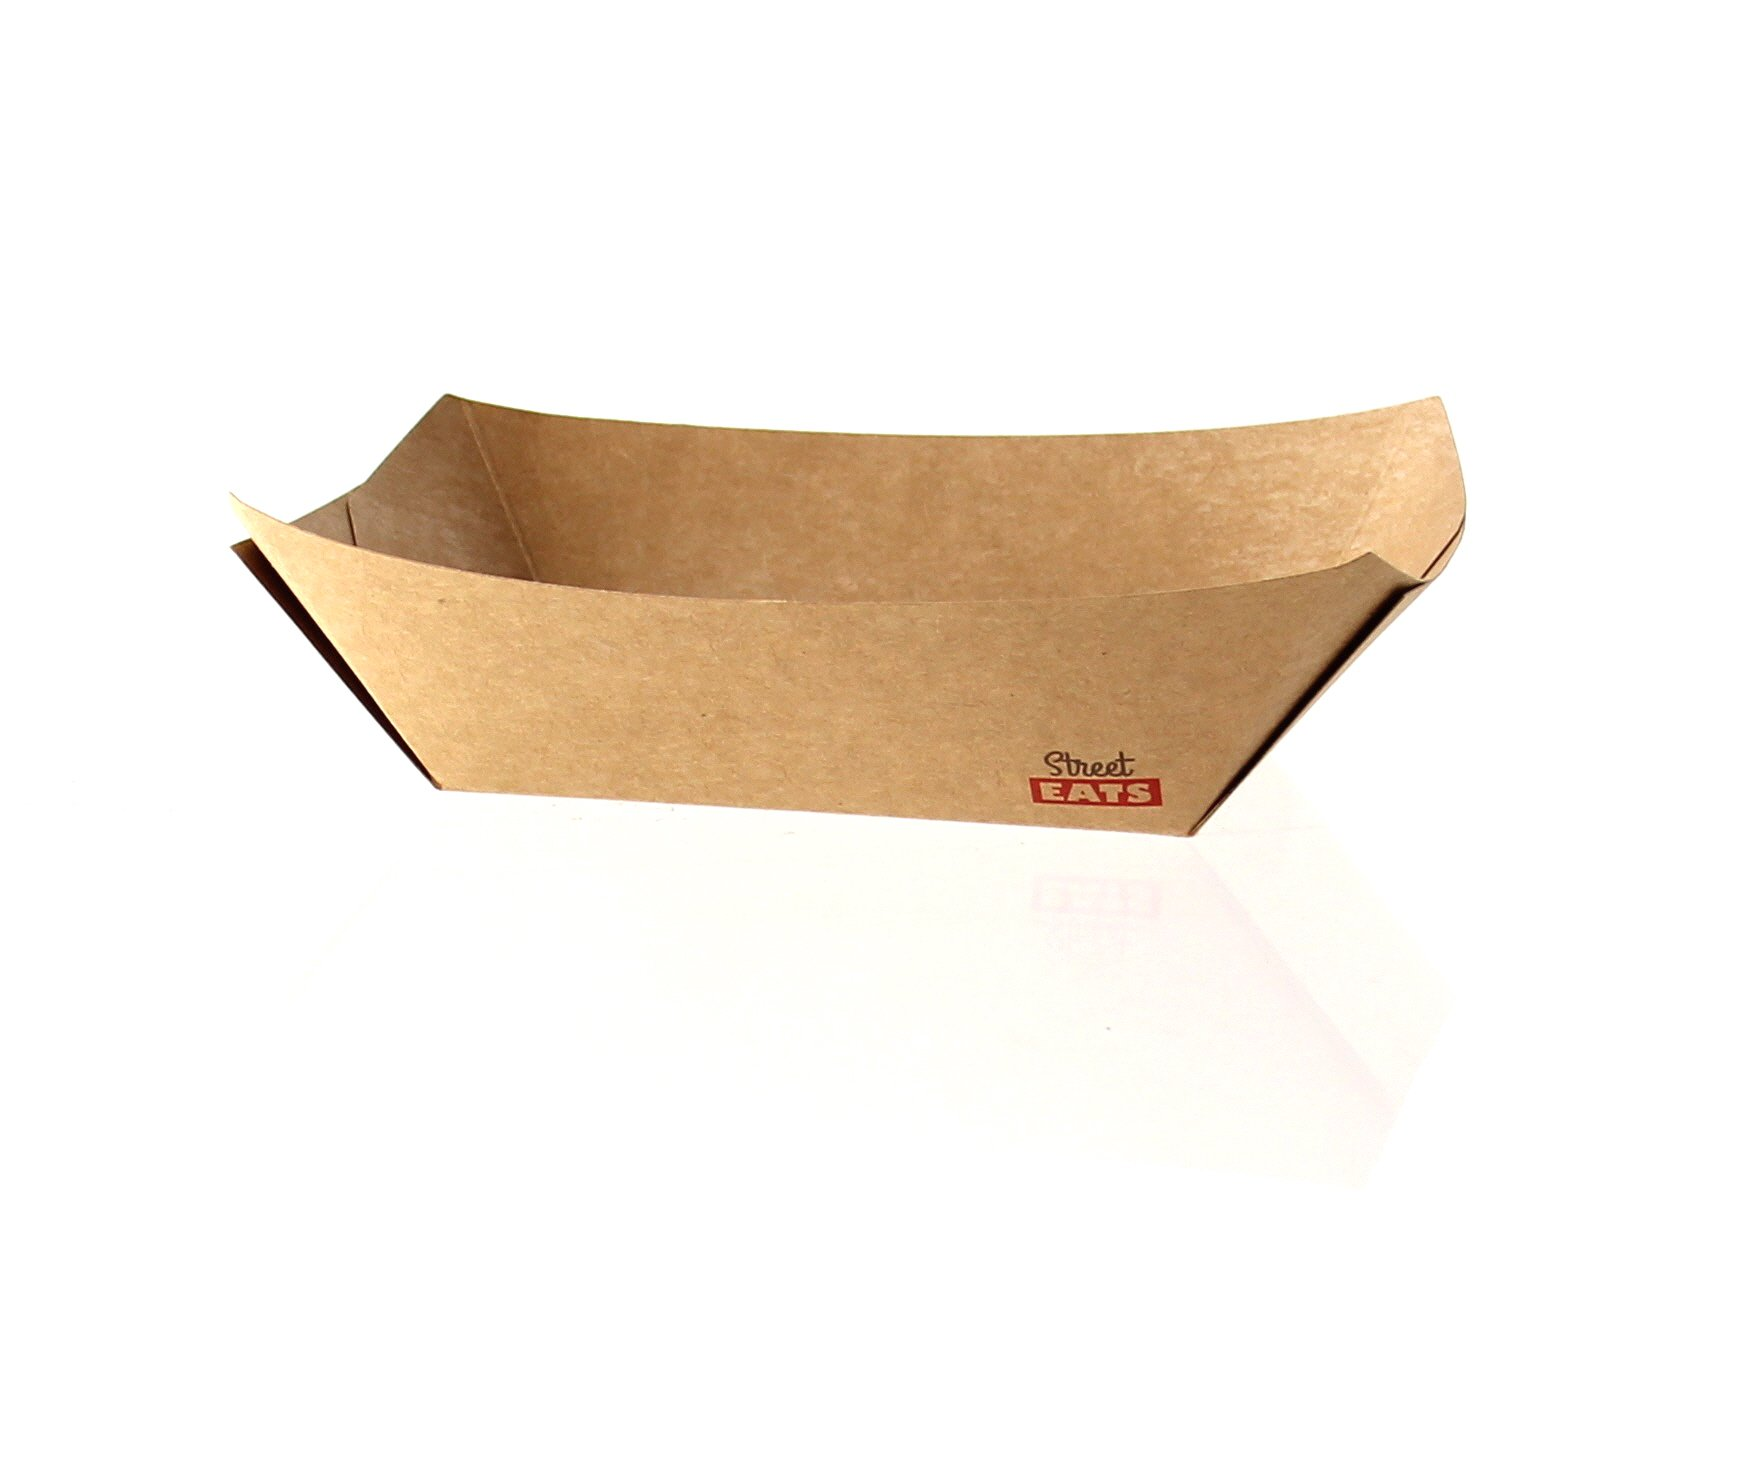 Kraft Brown Paper Food Tray Boat (Case of 1000), PacknWood - Party Supplies Snack Trays (13.5 oz, 6.7'' x 4.7'' x 1.2'') 210BQKEAT4 by PacknWood (Image #1)